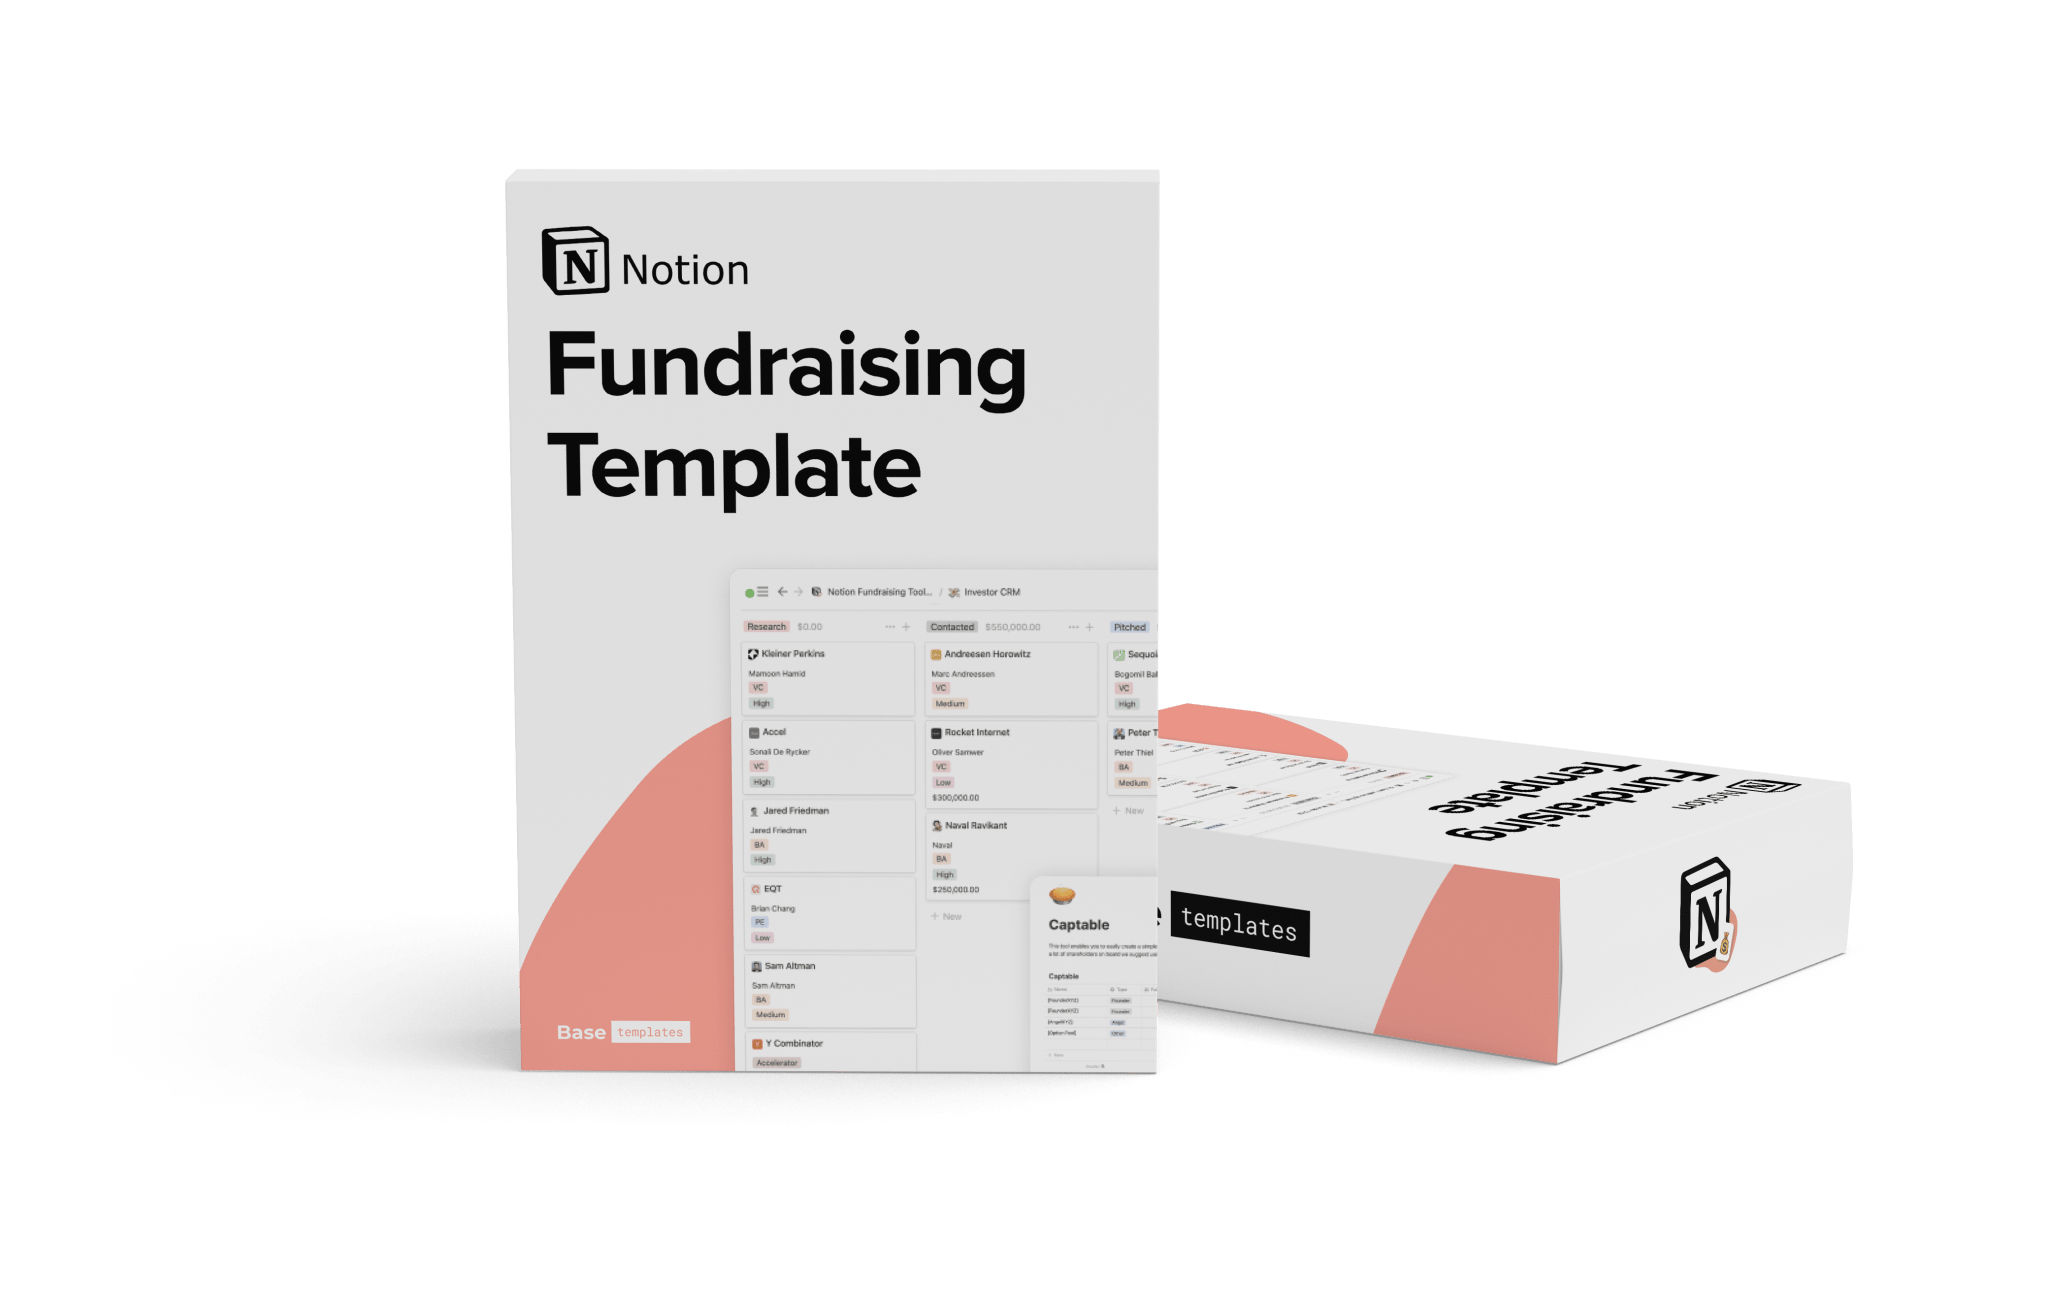 Notion Fundraising Template for StartUps